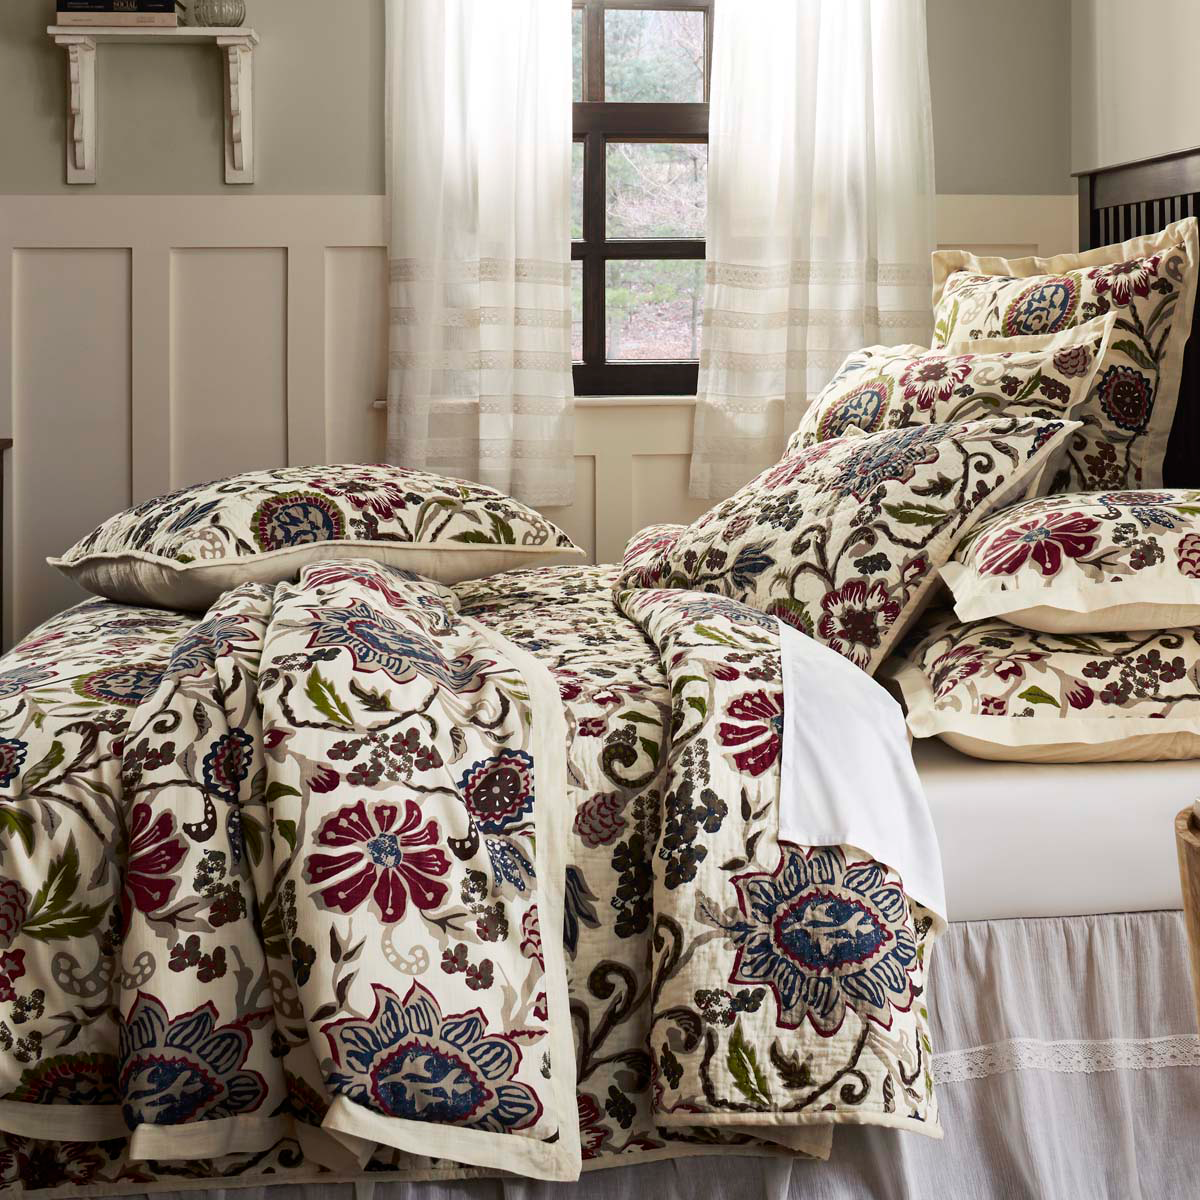 3-pc King HOPE Quilt and Shams Set - Green Apple, Rose, Lake Blue - VHC Brands